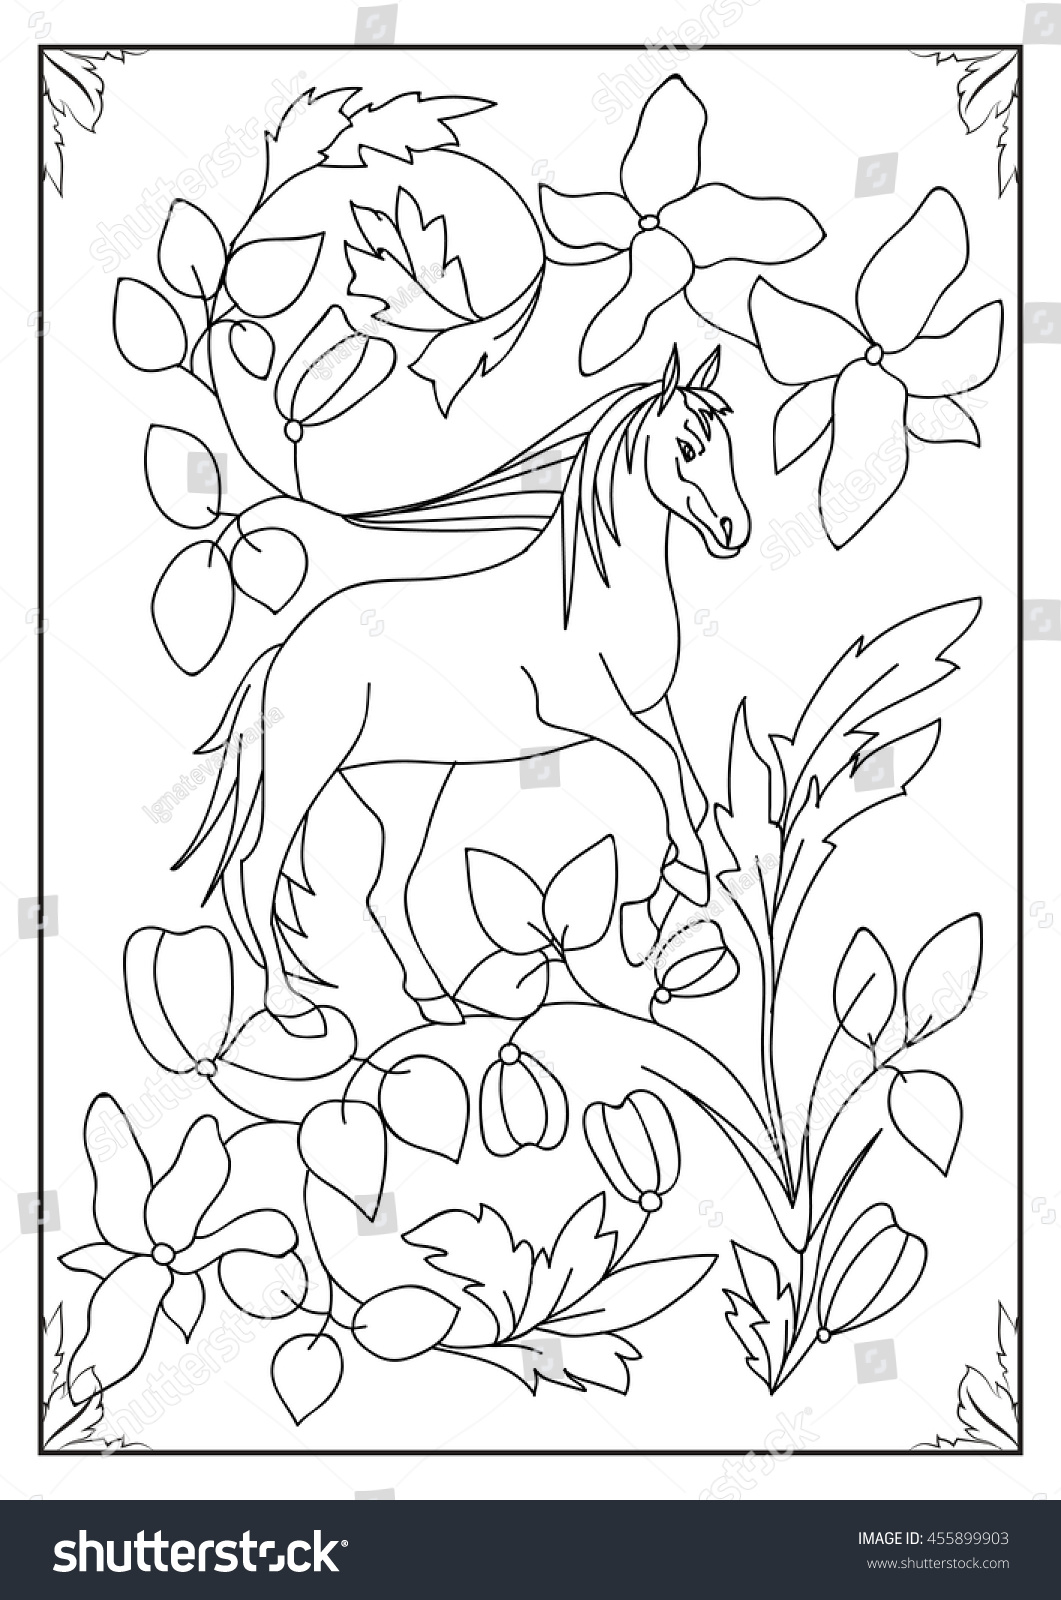 coloring book mythical horse stock vector 455899903 shutterstock